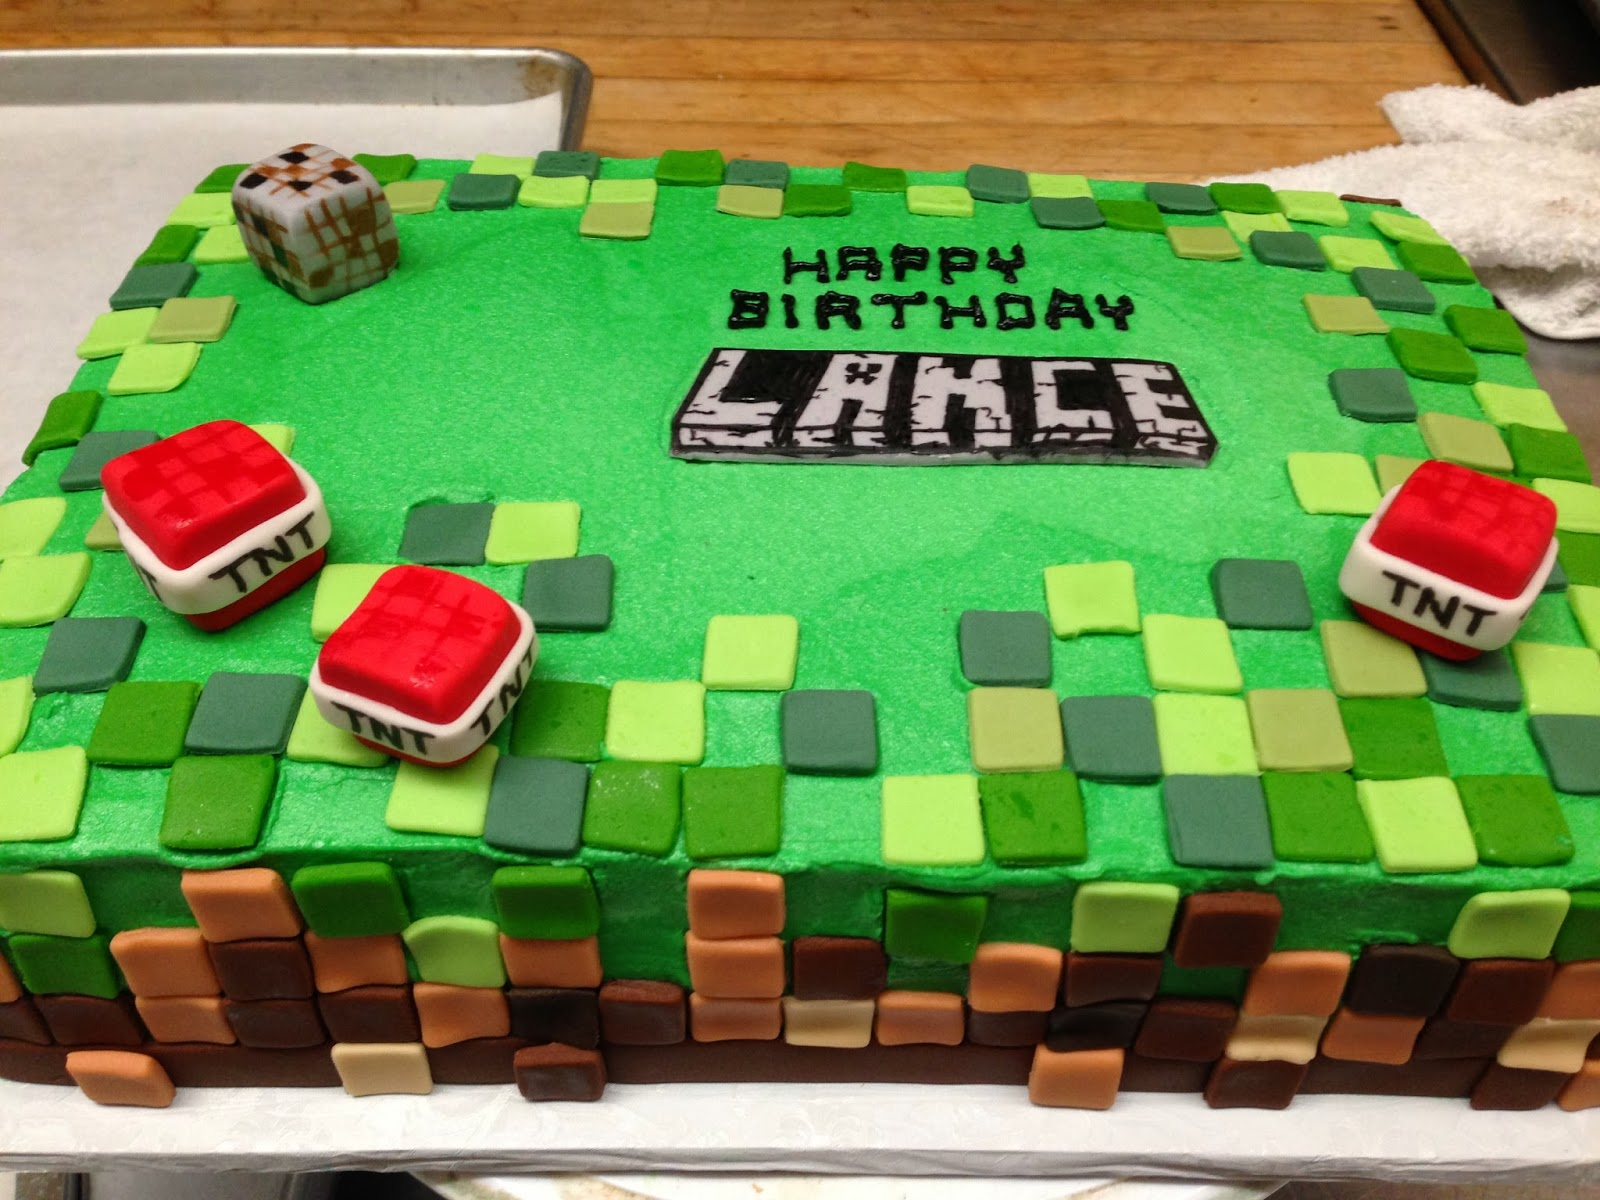 Minecraft Images For Cake : Buttercream Minecraft Cake images